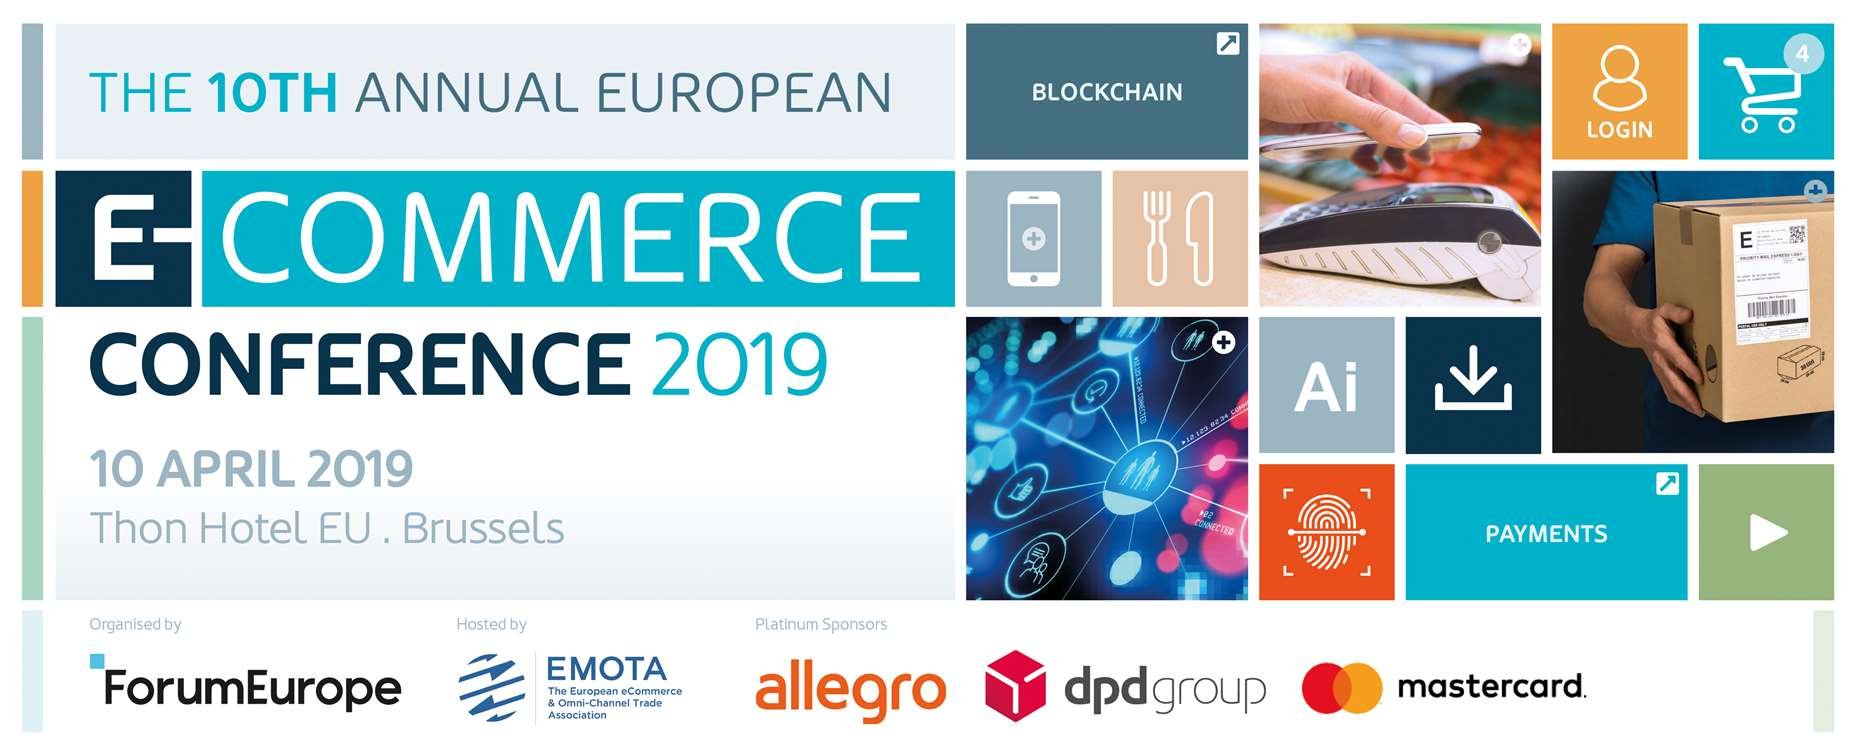 The 10th Annual European E-Commerce Conference 2019